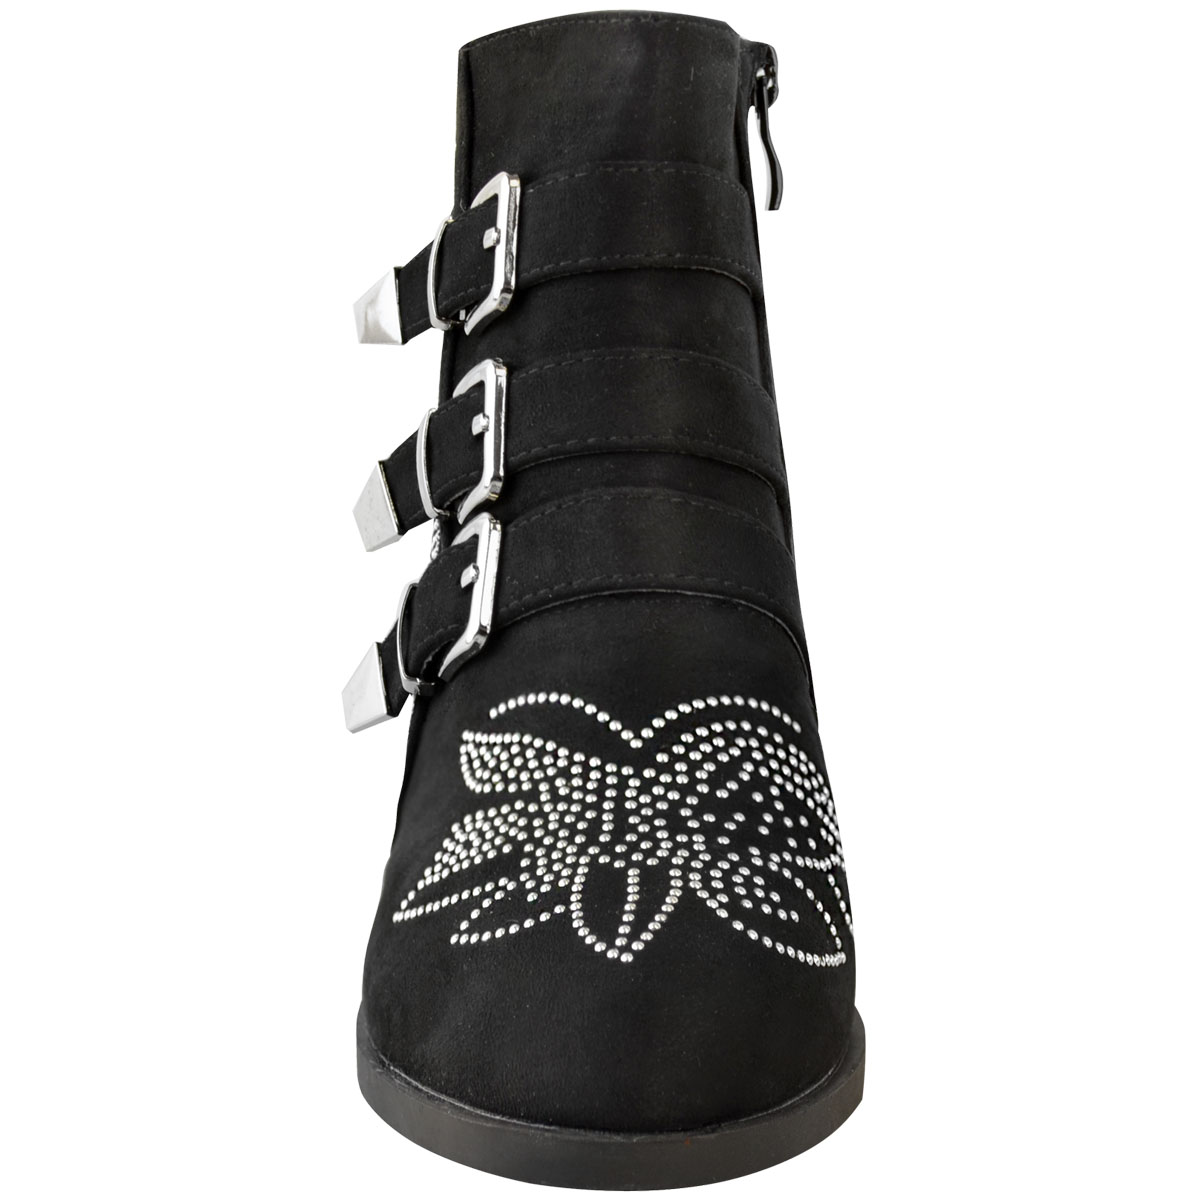 Womens Ladies Studded Flat Ankle Boots Spikes Biker Punk